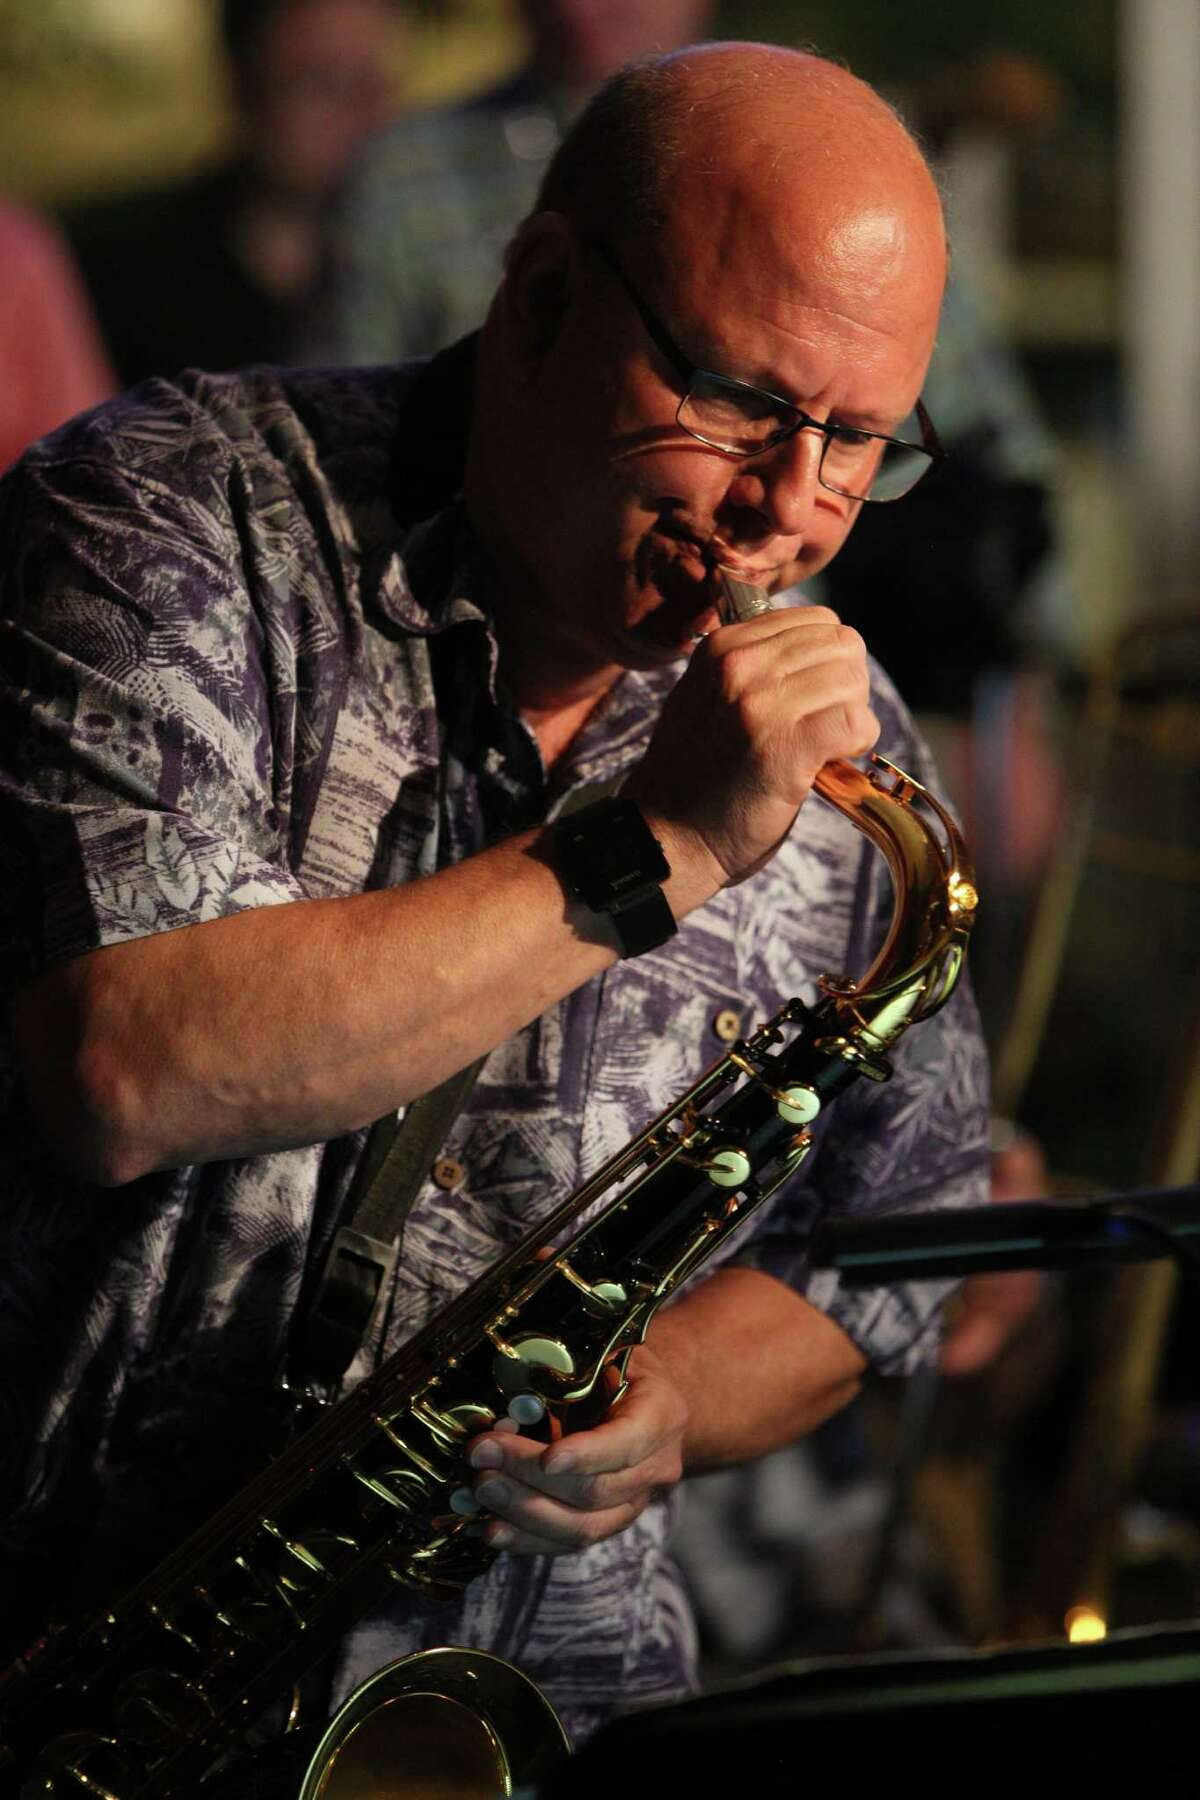 Stamford, Ct. 6.20.16 --- Ninth Note Jazz Supper Club --- Ken Nigro of Waterbury, playing a saxaphone solo adjusts his horn during the performance during a recent Monday session.